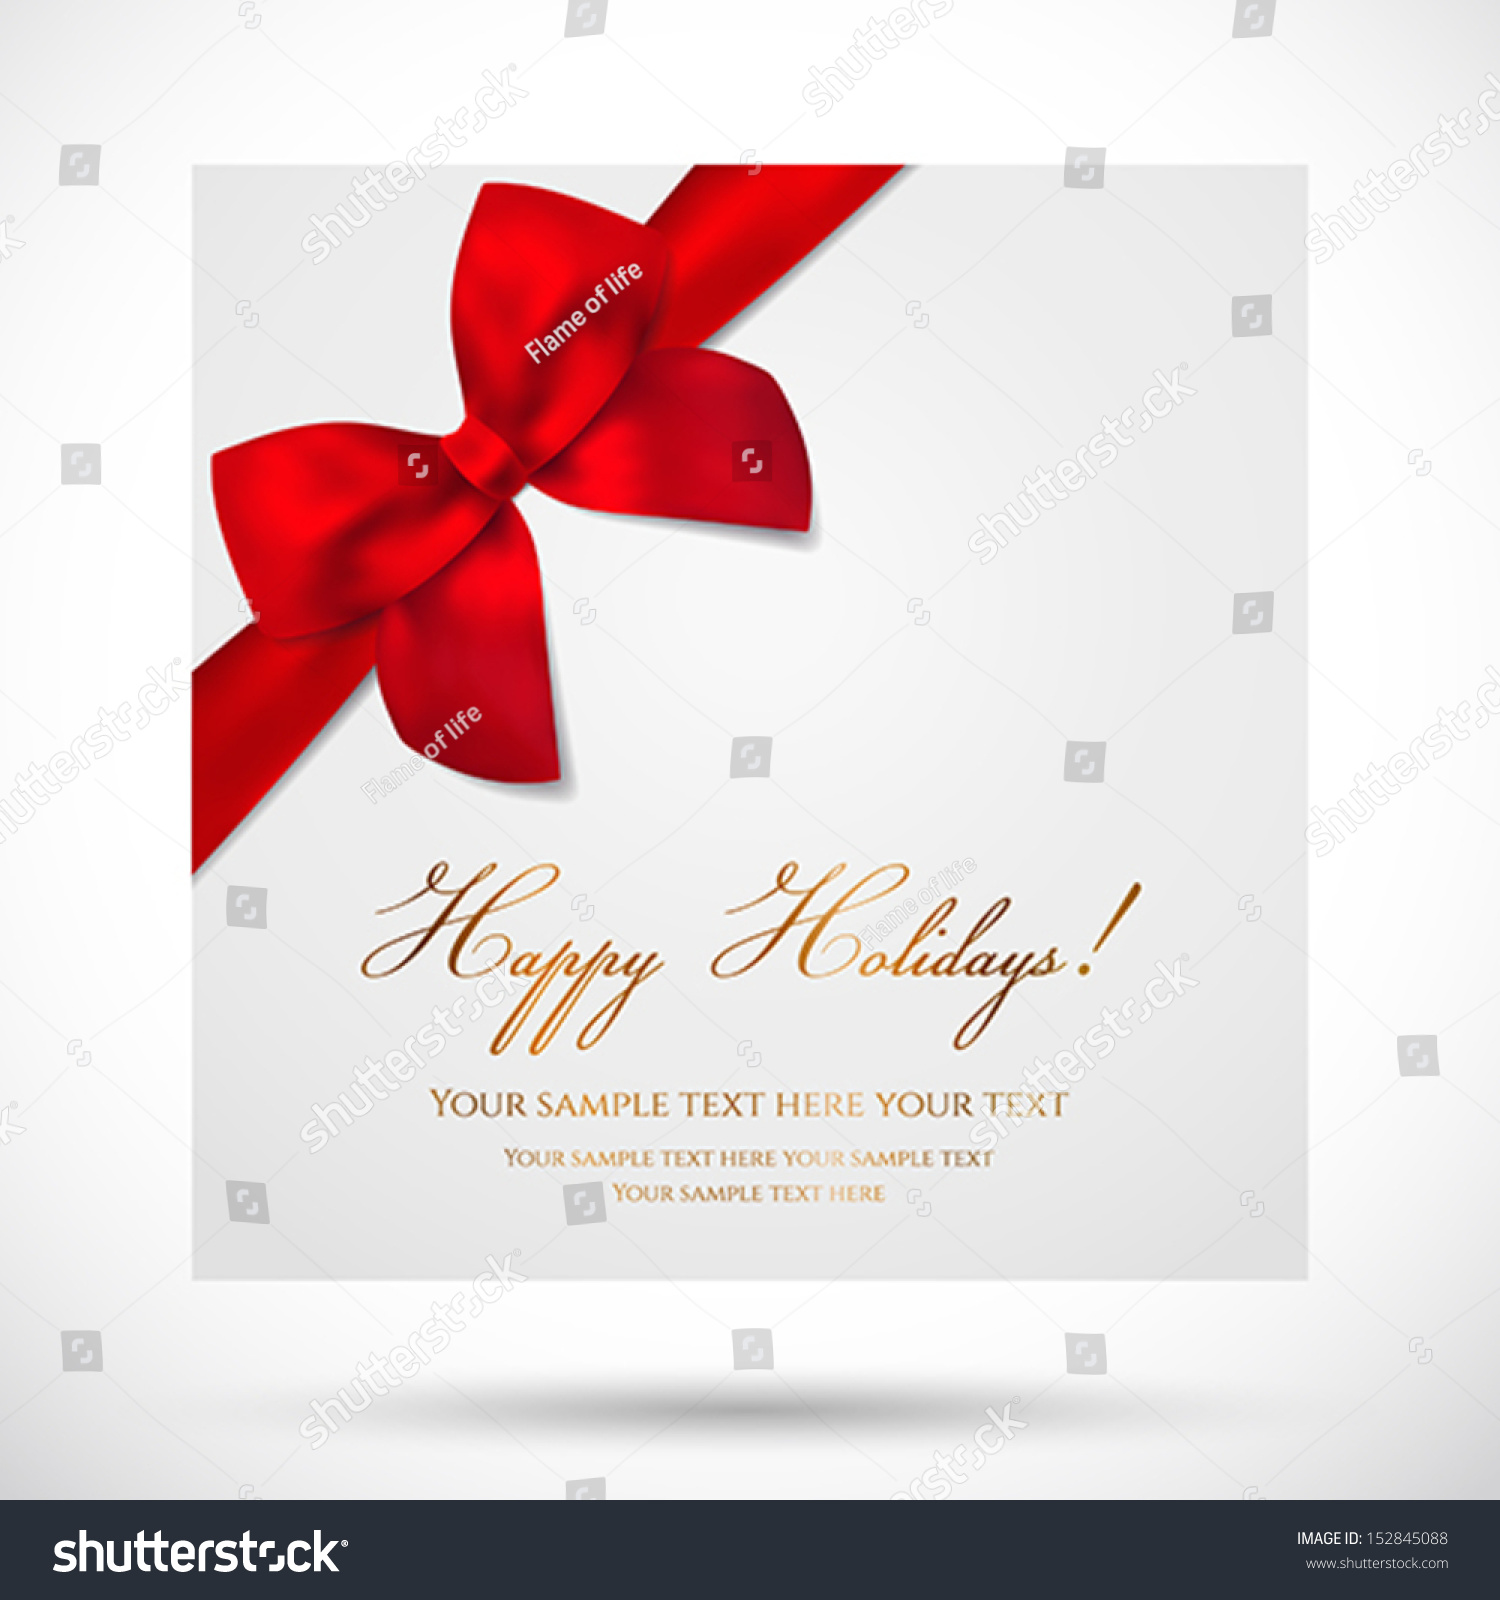 Holiday Card Christmas Card Birthday Card Stock Vector